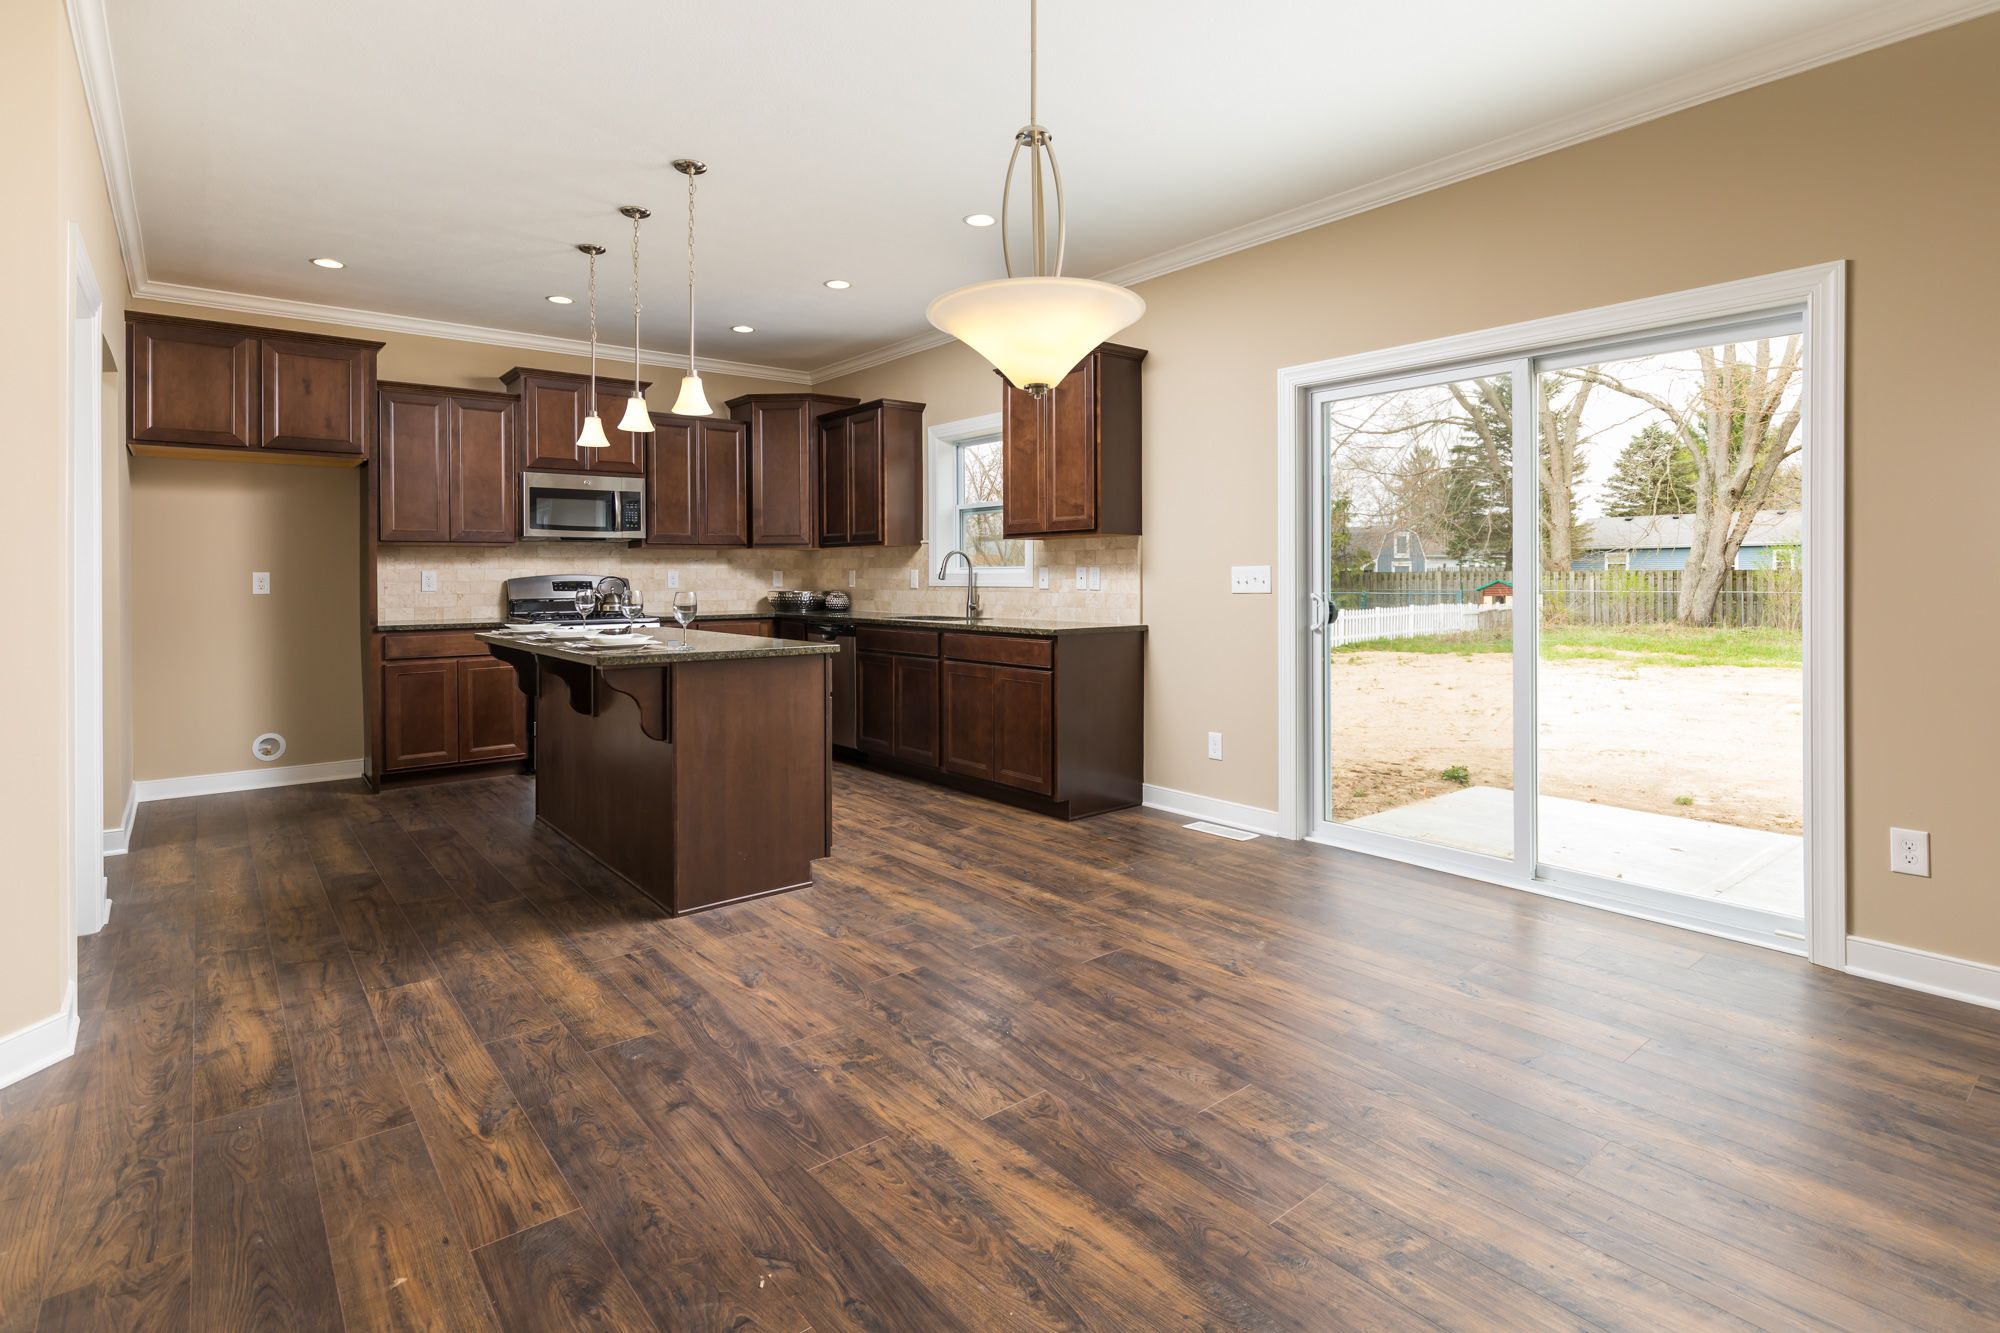 Kitchen featured in the Traditions 2600 V8.1b By Allen Edwin Homes in Elkhart-Goshen, IN